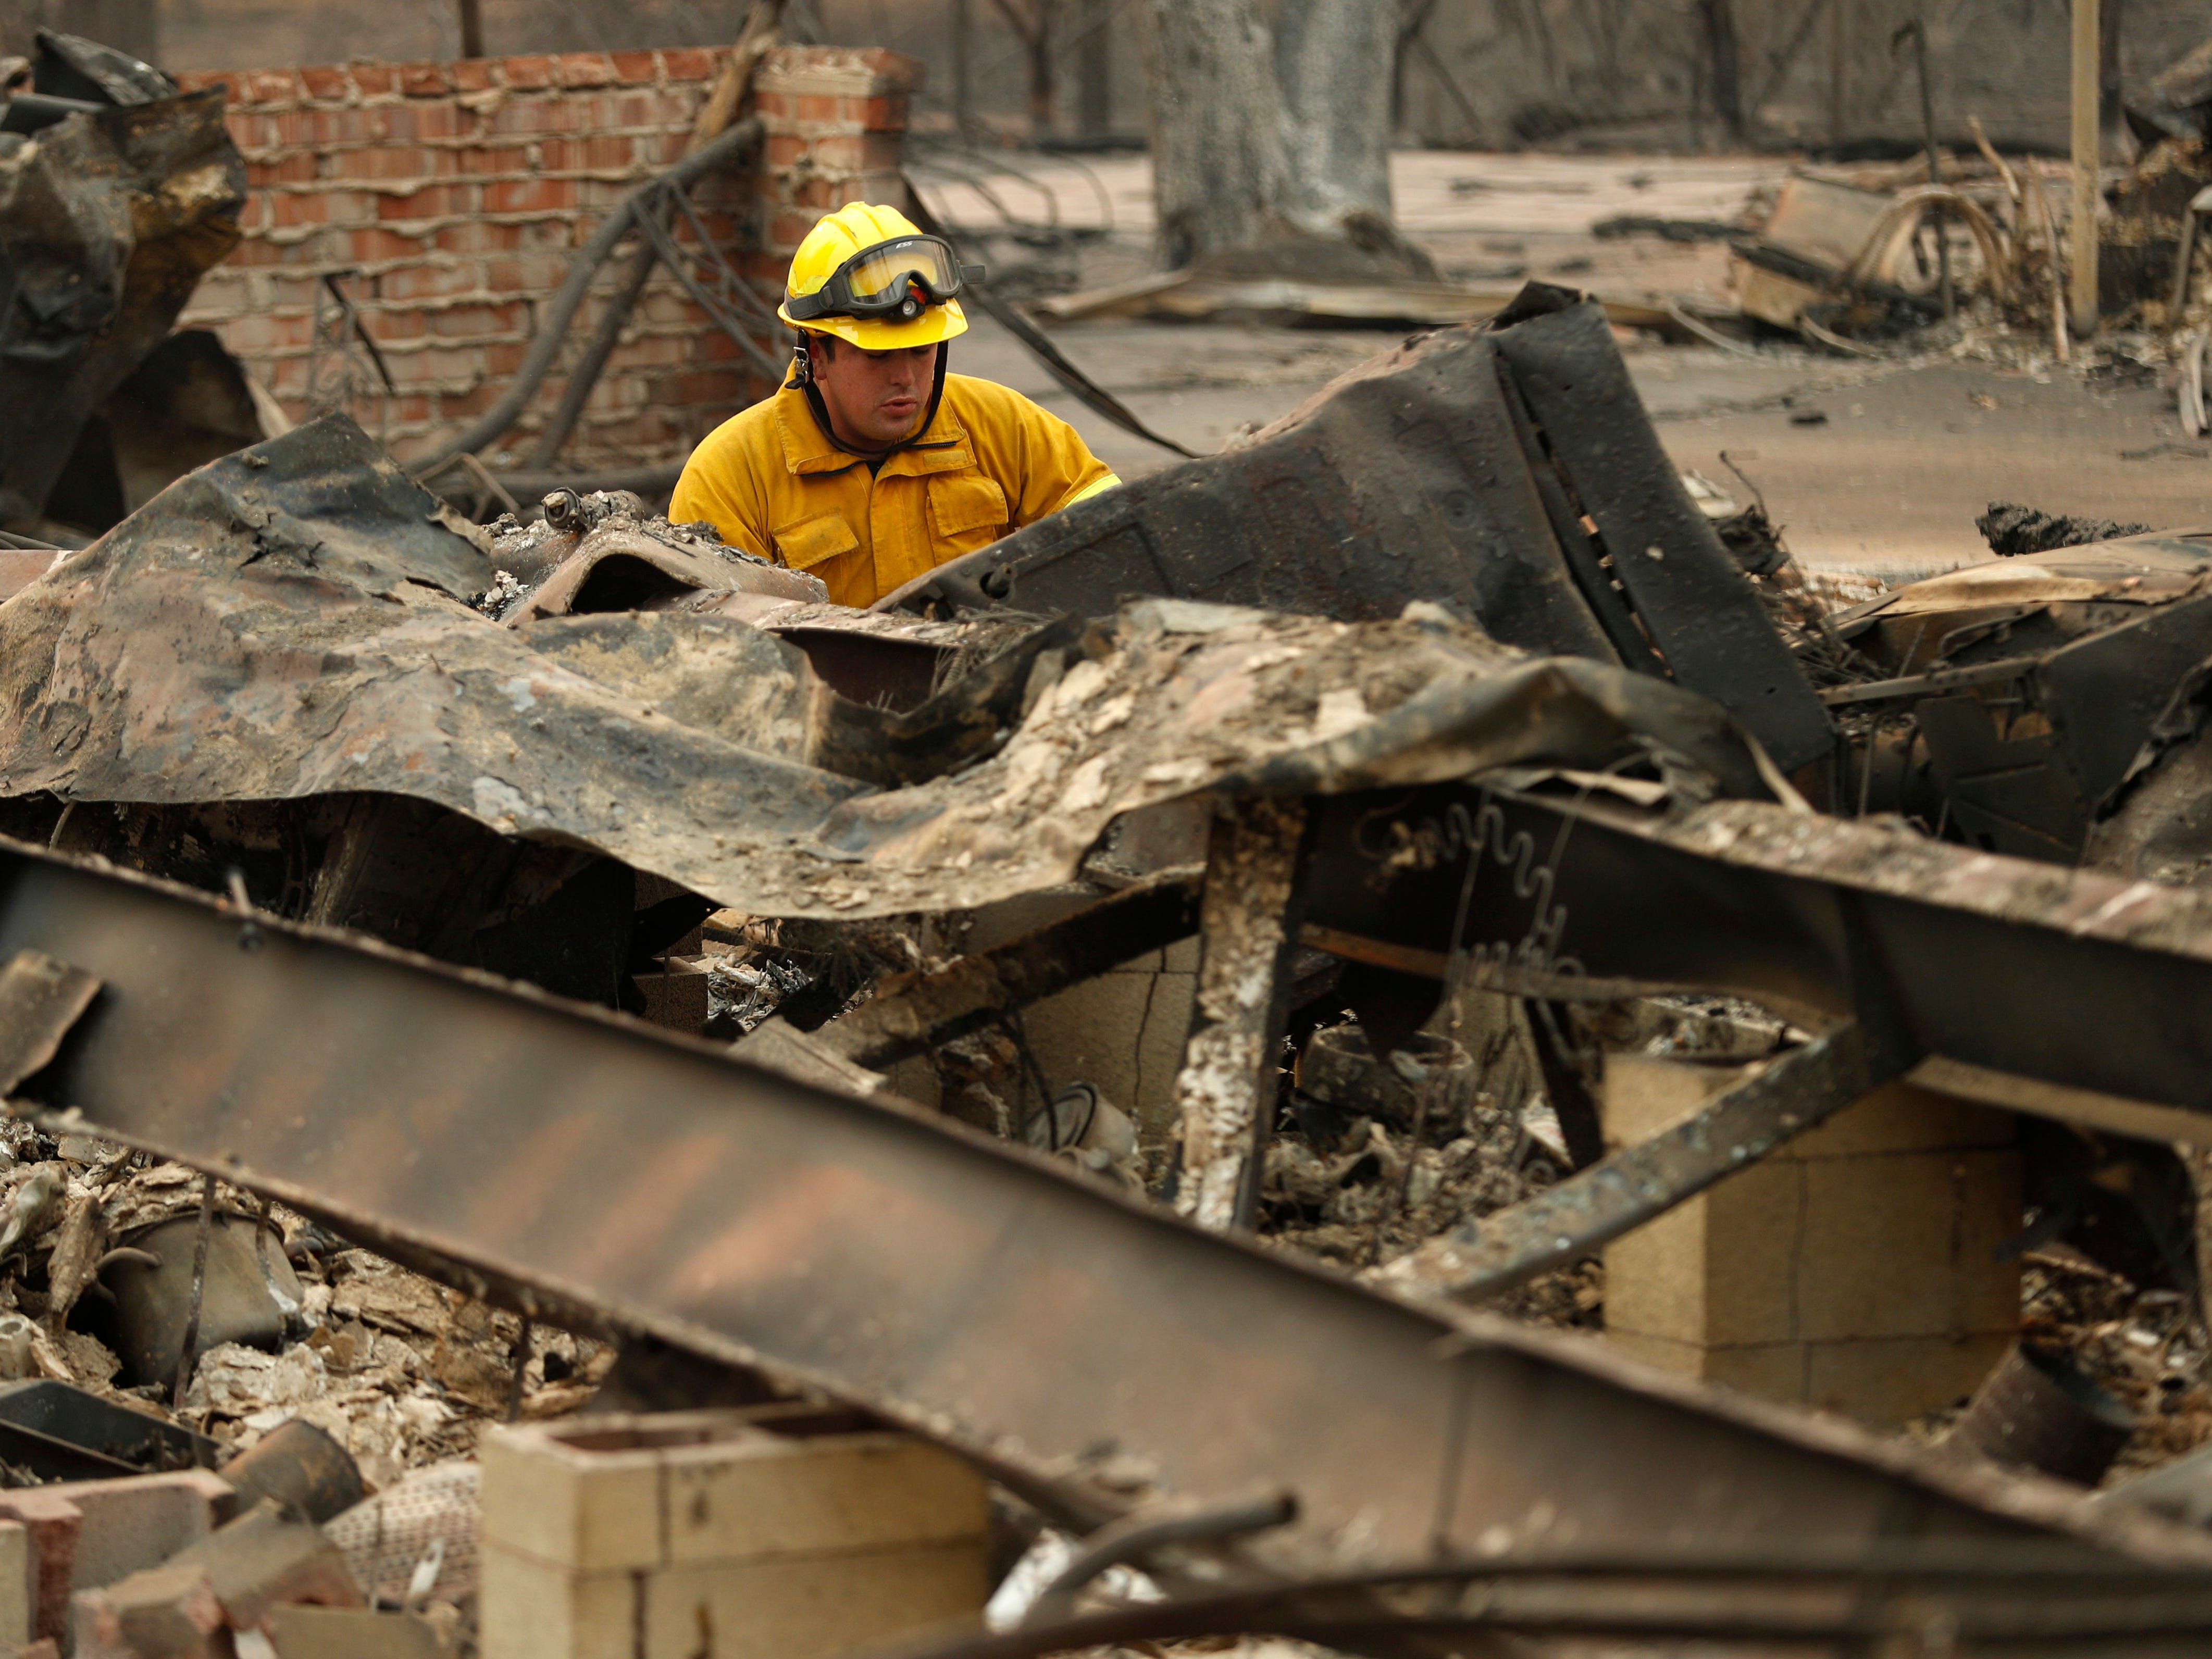 A firefighter looks through a home destroyed by the Camp Fire where human remains were found on Nov. 11, 2018, in Paradise, Calif.